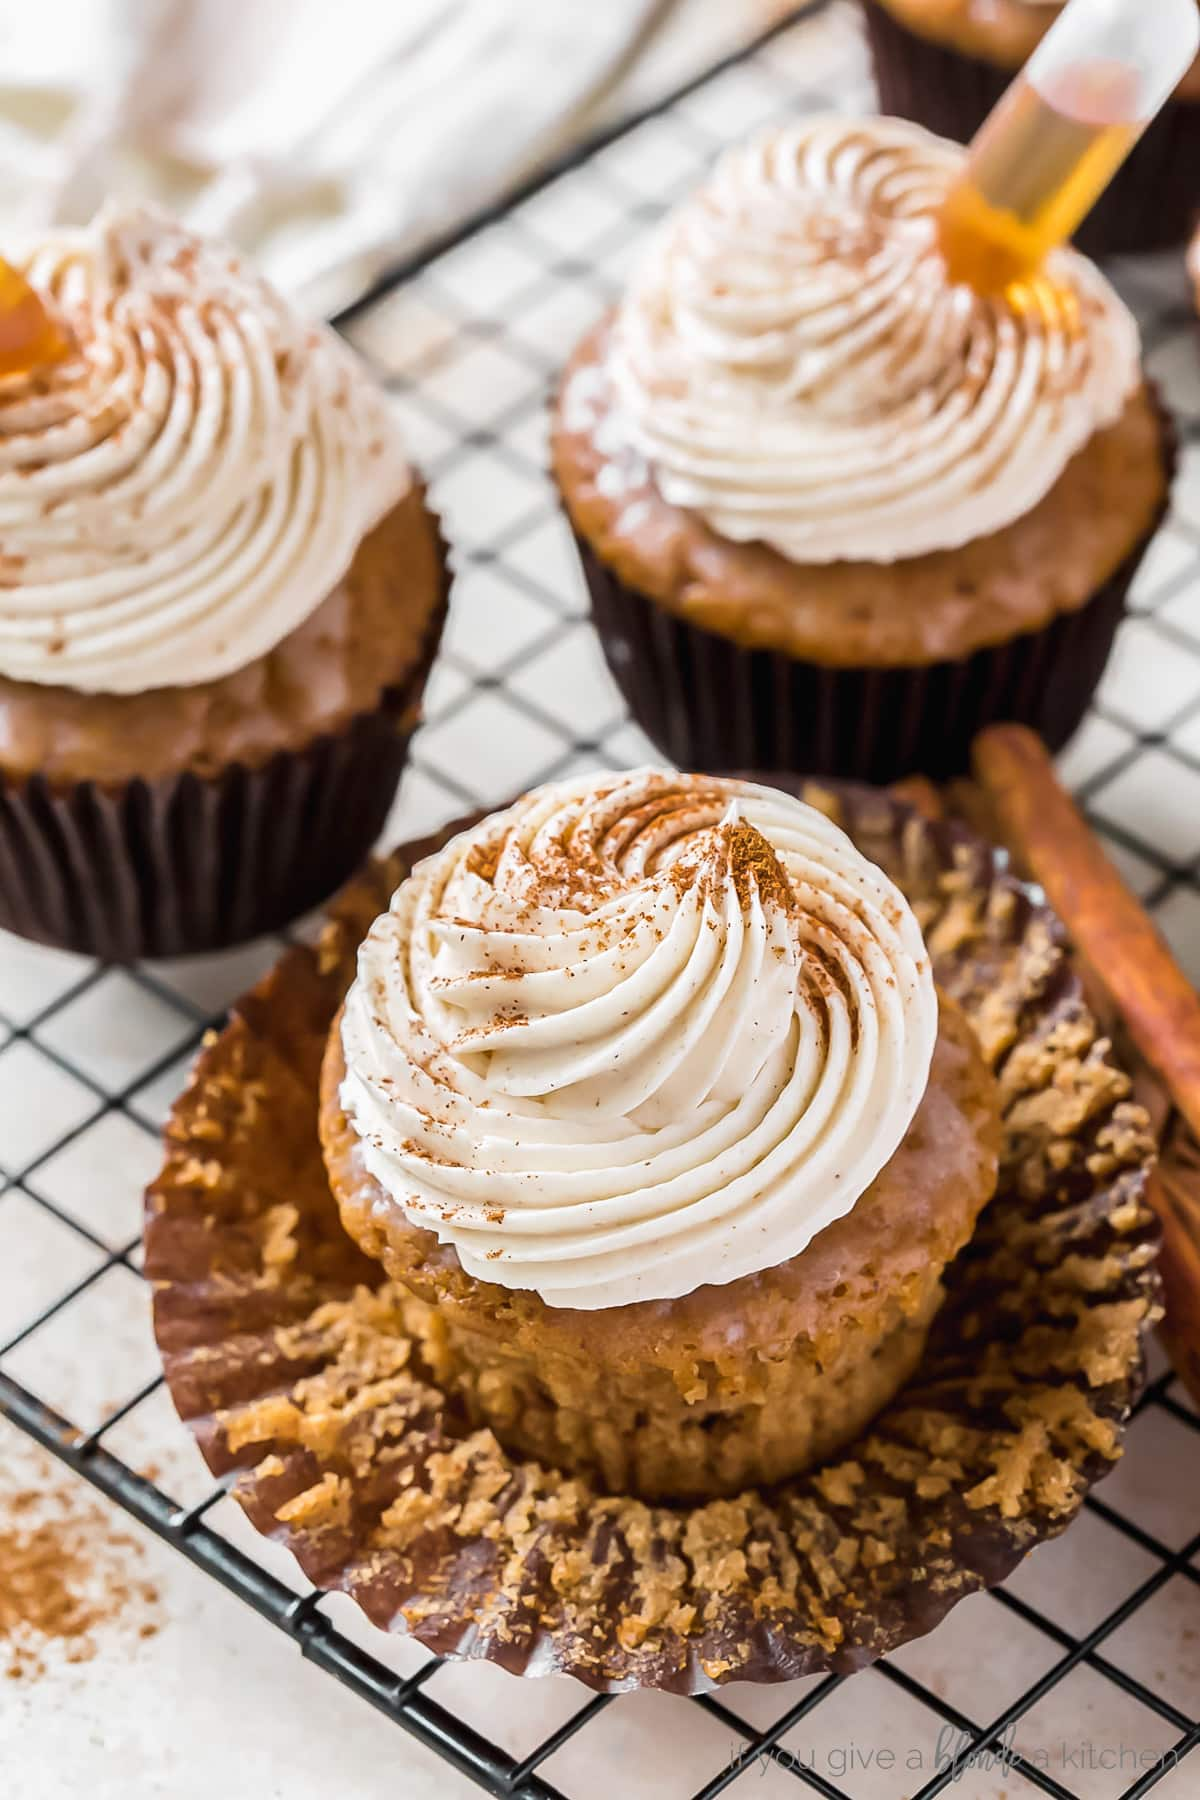 buttered rum cupcakes topped with rum frosting and cinnamon on unwrapped paper cupcake liner